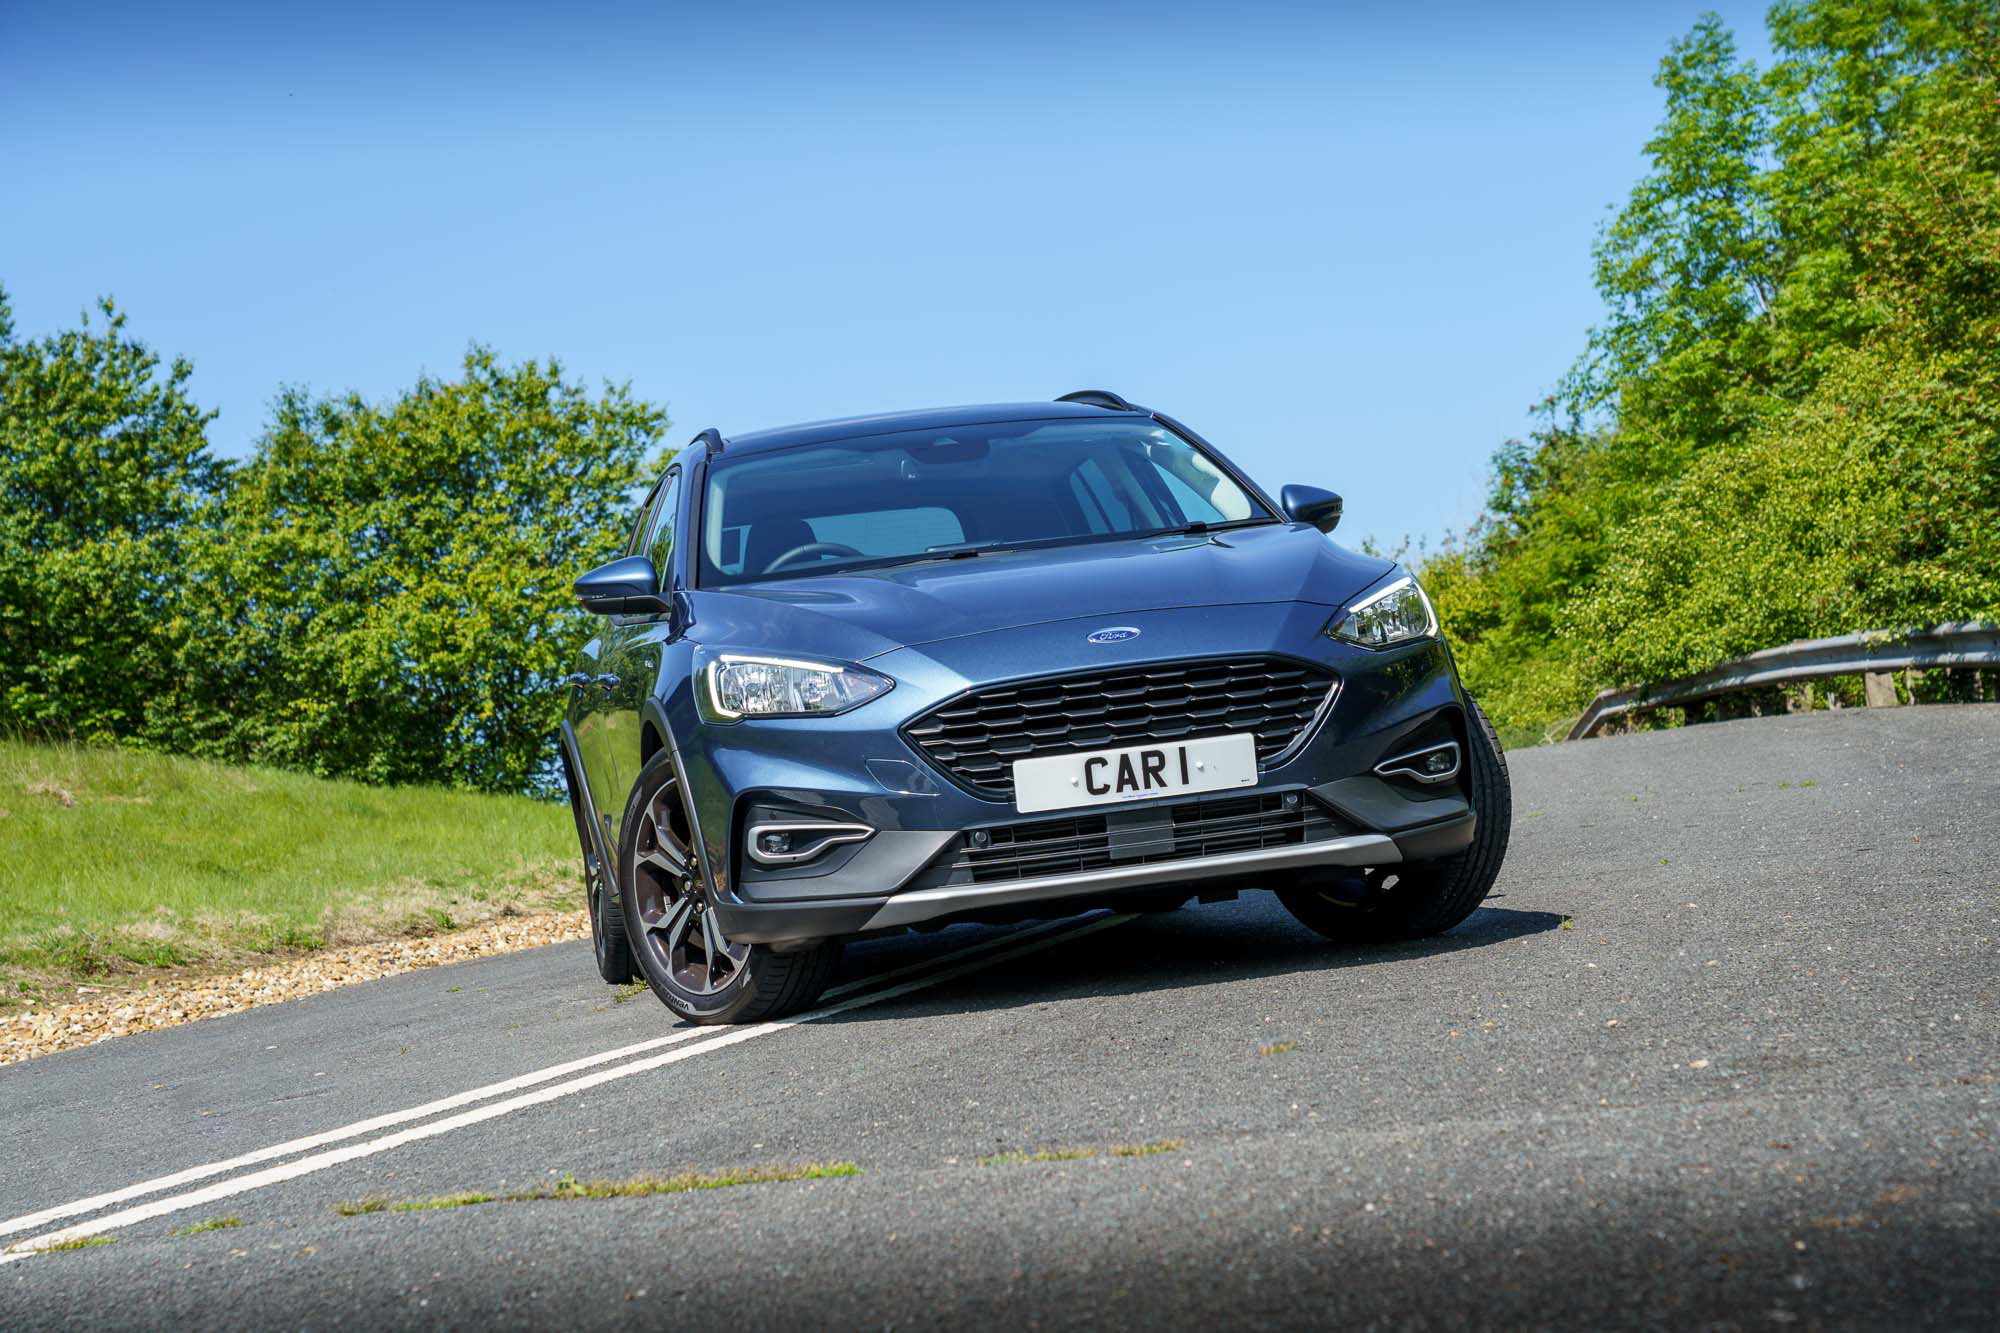 2019 Ford Focus Active X Estate Review